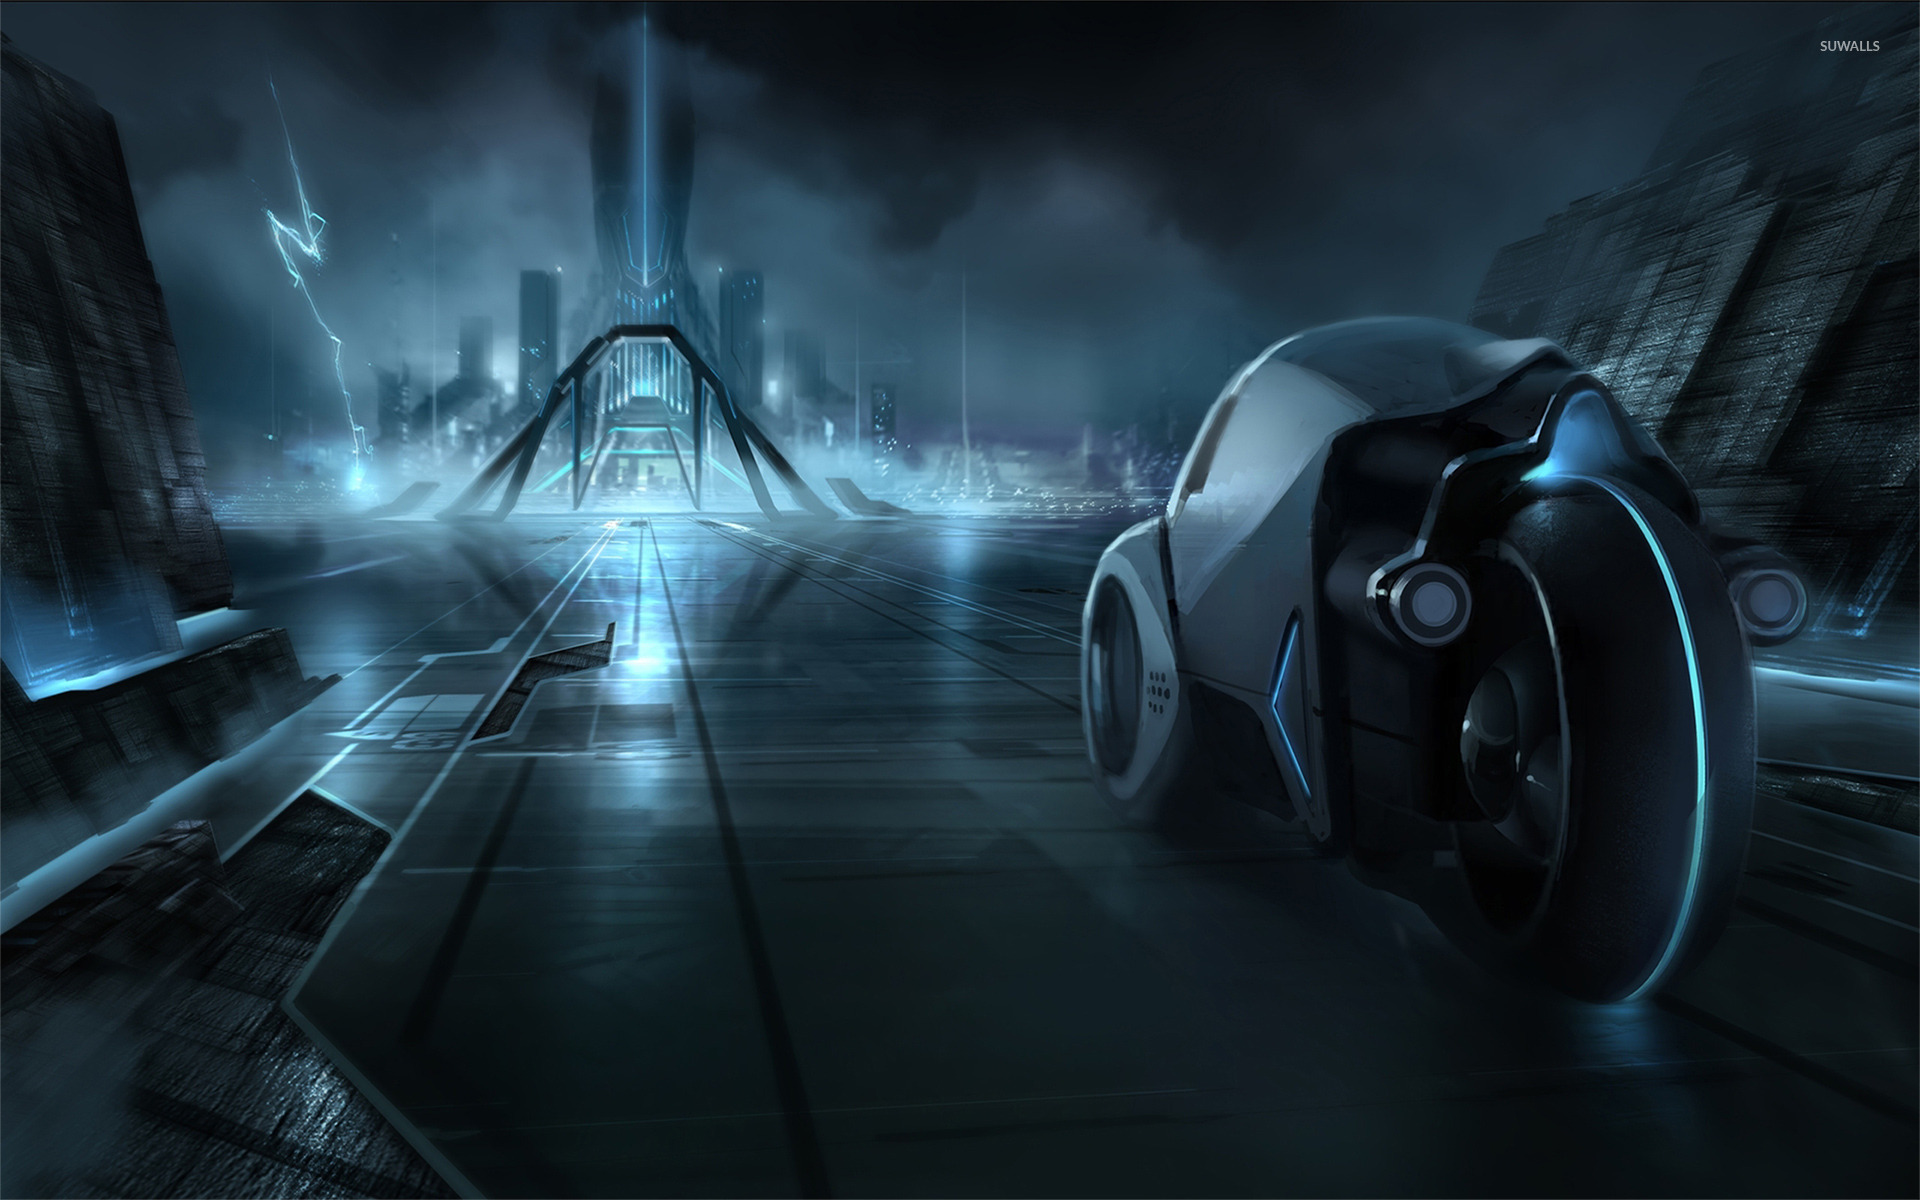 tron -legacy-wallpapers-30156-9723835.jpg